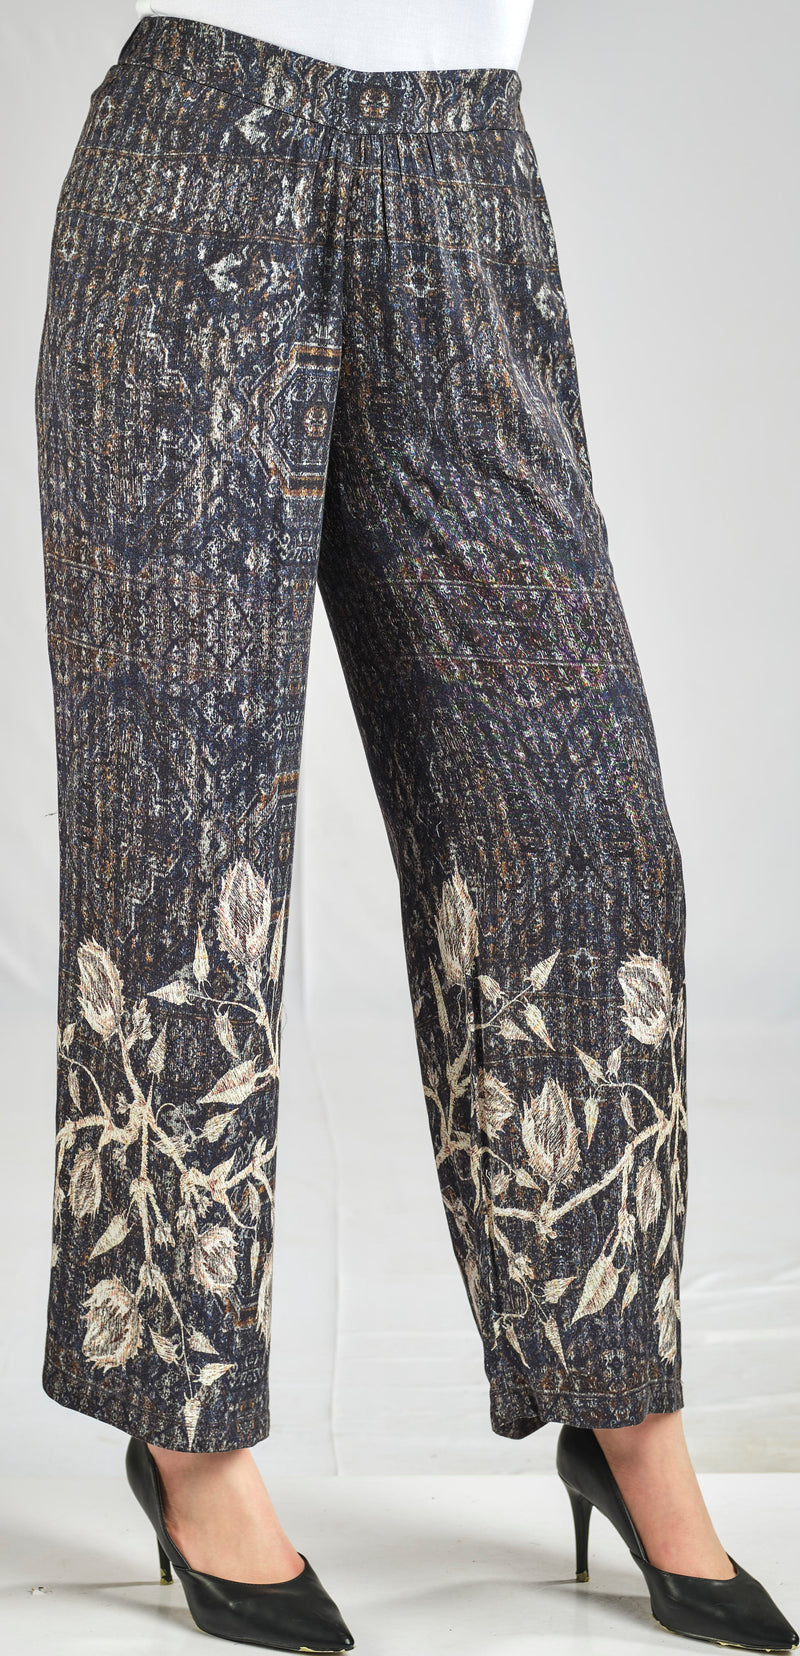 PRINTED 100% VISCOSE PANTS WITH FLORAL PANEL